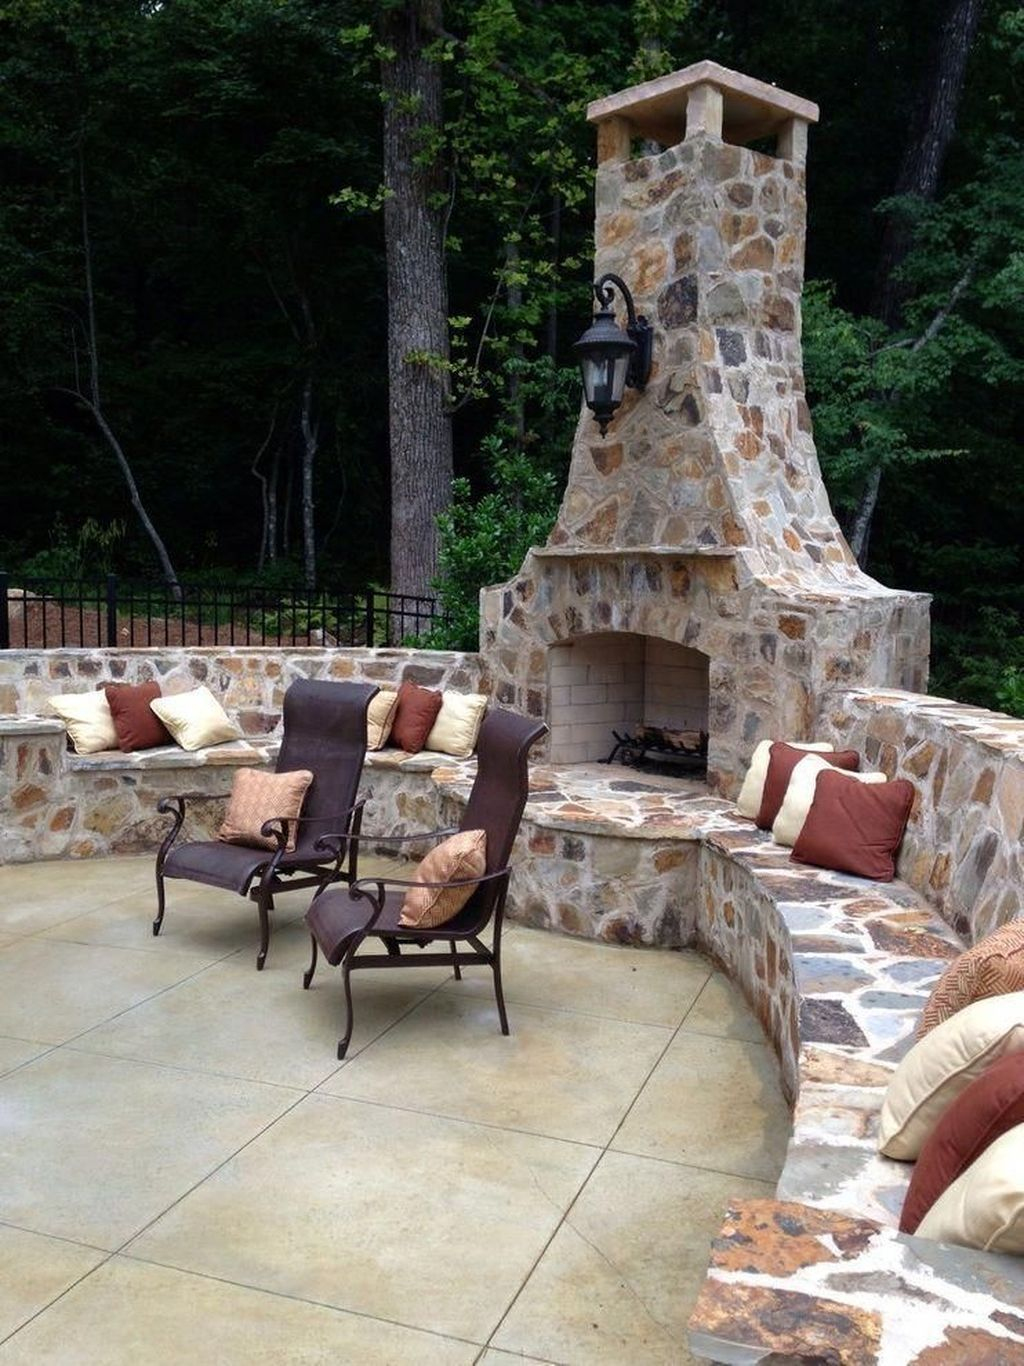 20 Fantastic Backyard Fireplace Ideas That Suitable For All Season Outdoor Fireplace Patio Backyard Fireplace Outdoor Fireplace Designs Backyard landscaping ideas with fireplace